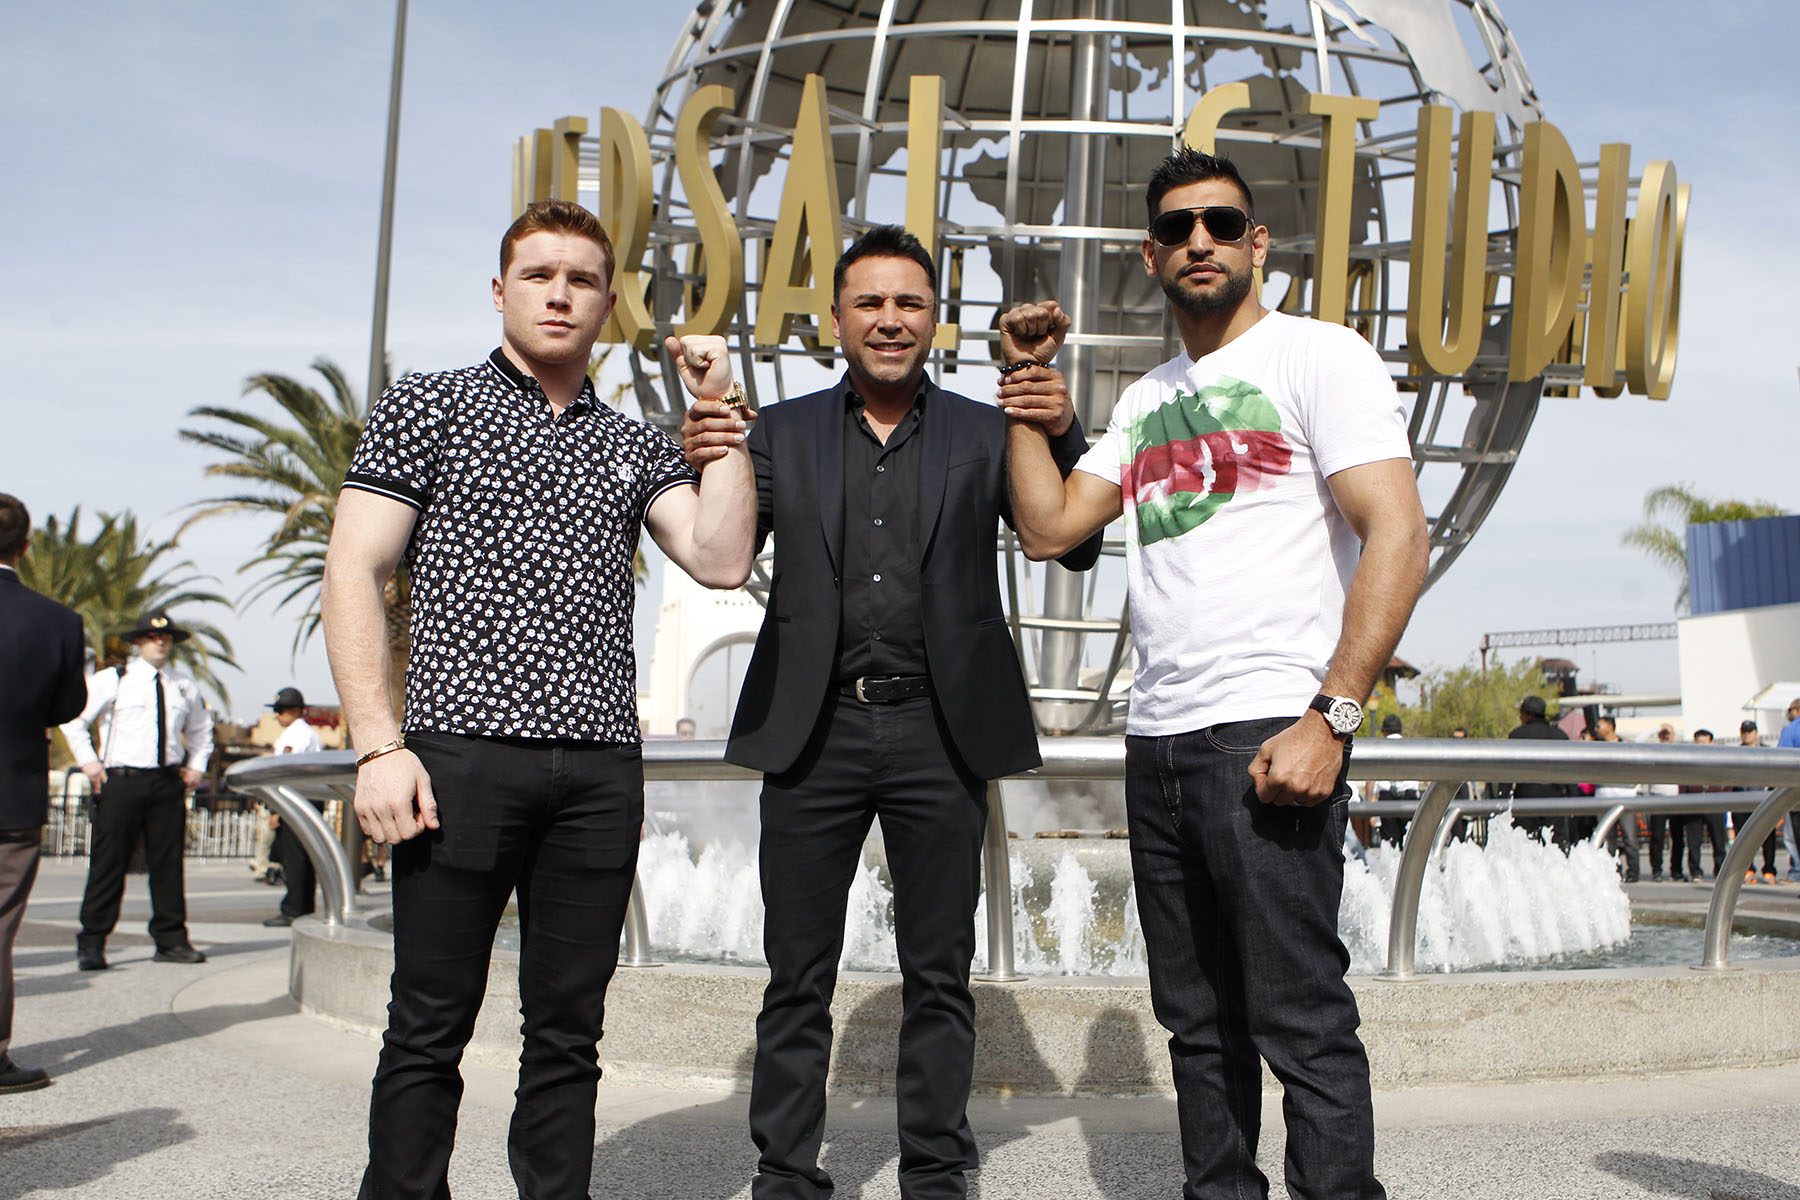 Canelo Alvarez and Amir Khan face one another for the final time before their May 7th clash. Photo Credit: Hogan Photos/Golden Boy Promotions